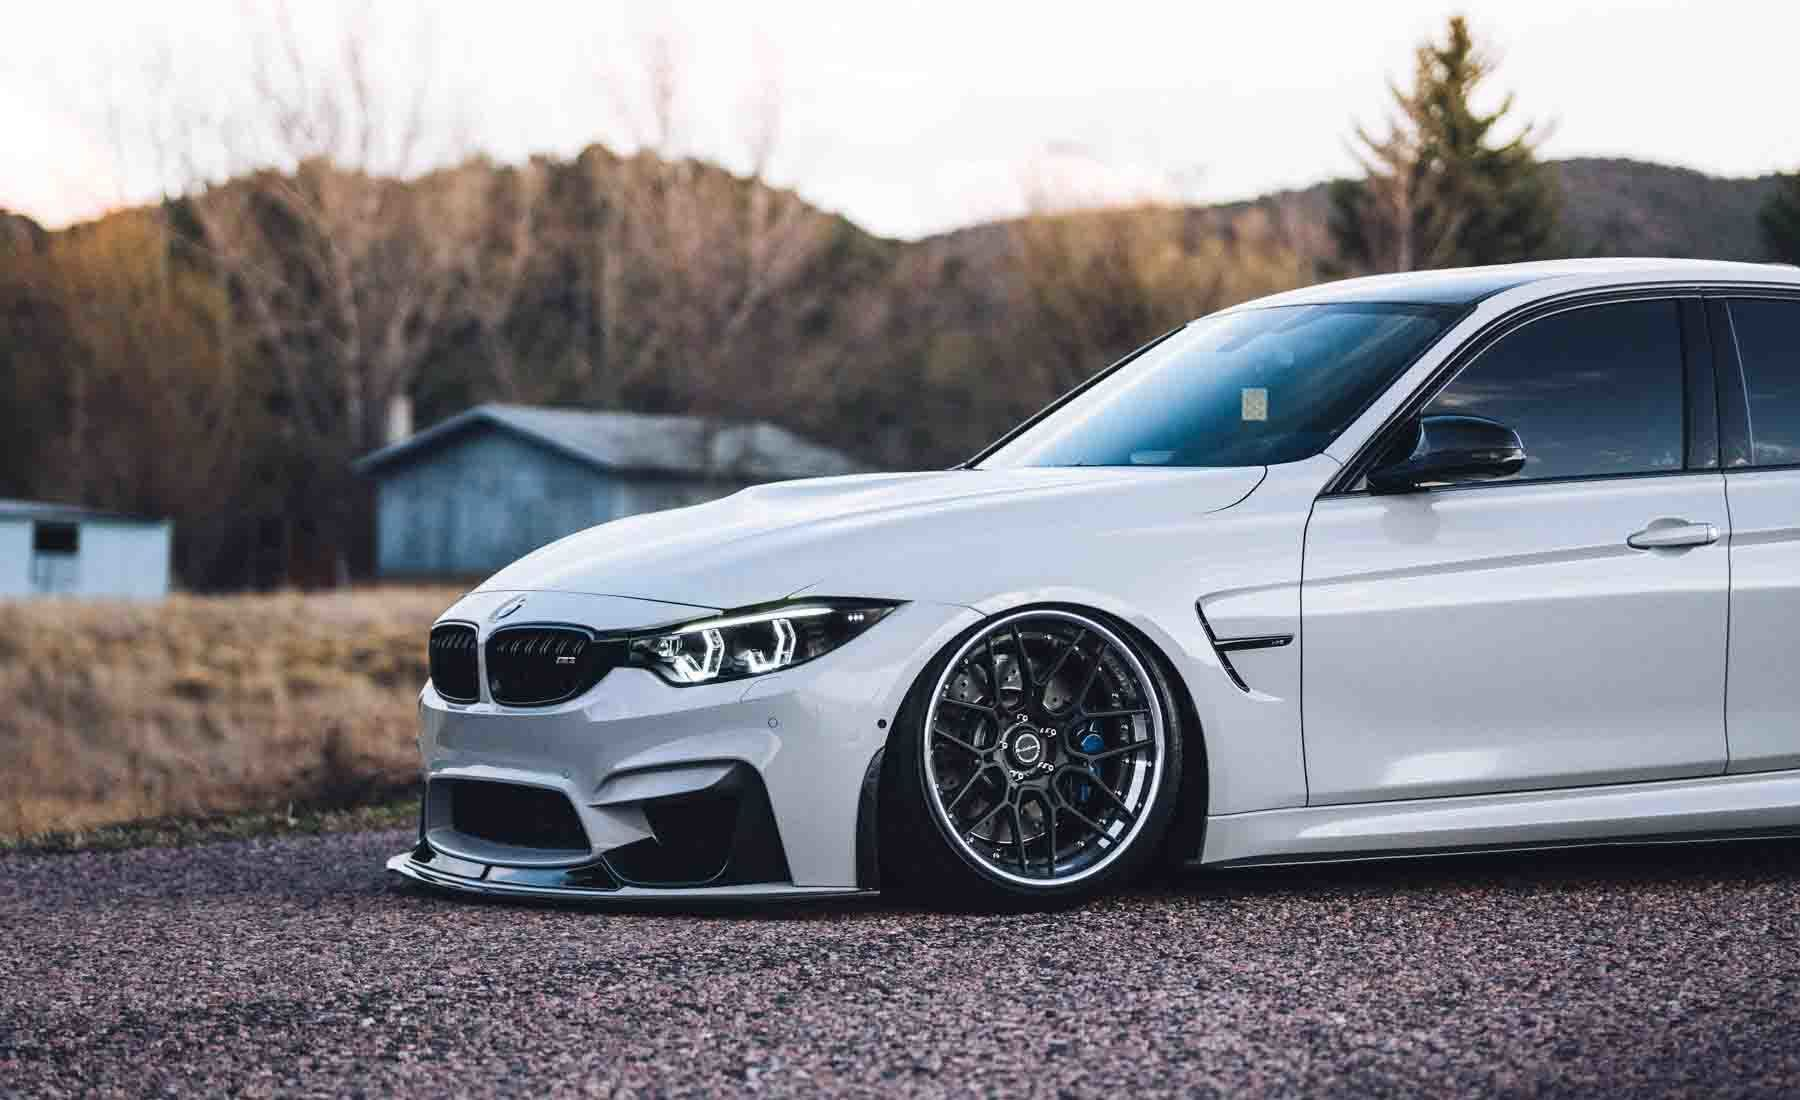 images-products-1-2661-232974949-fashion-grey-bmw-f80-m3-brixton-forged-cm8-targa-series-3-piece-concave-forged-wheels-20-brushed.jpg